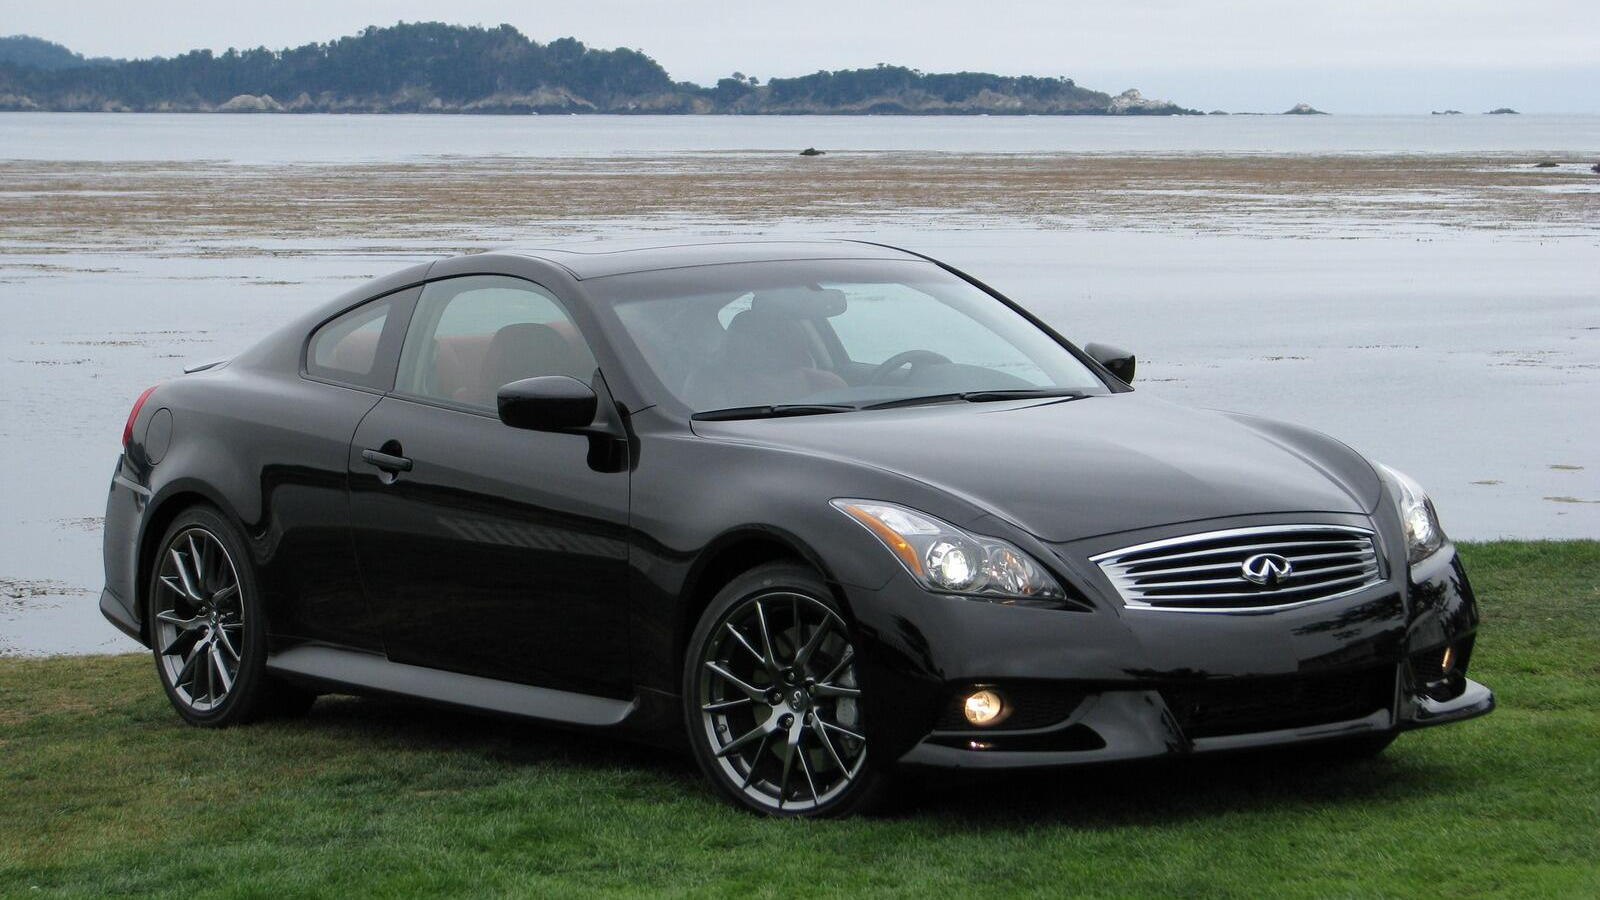 2011 Infiniti G37 Coupe IPL live from Pebble Beach